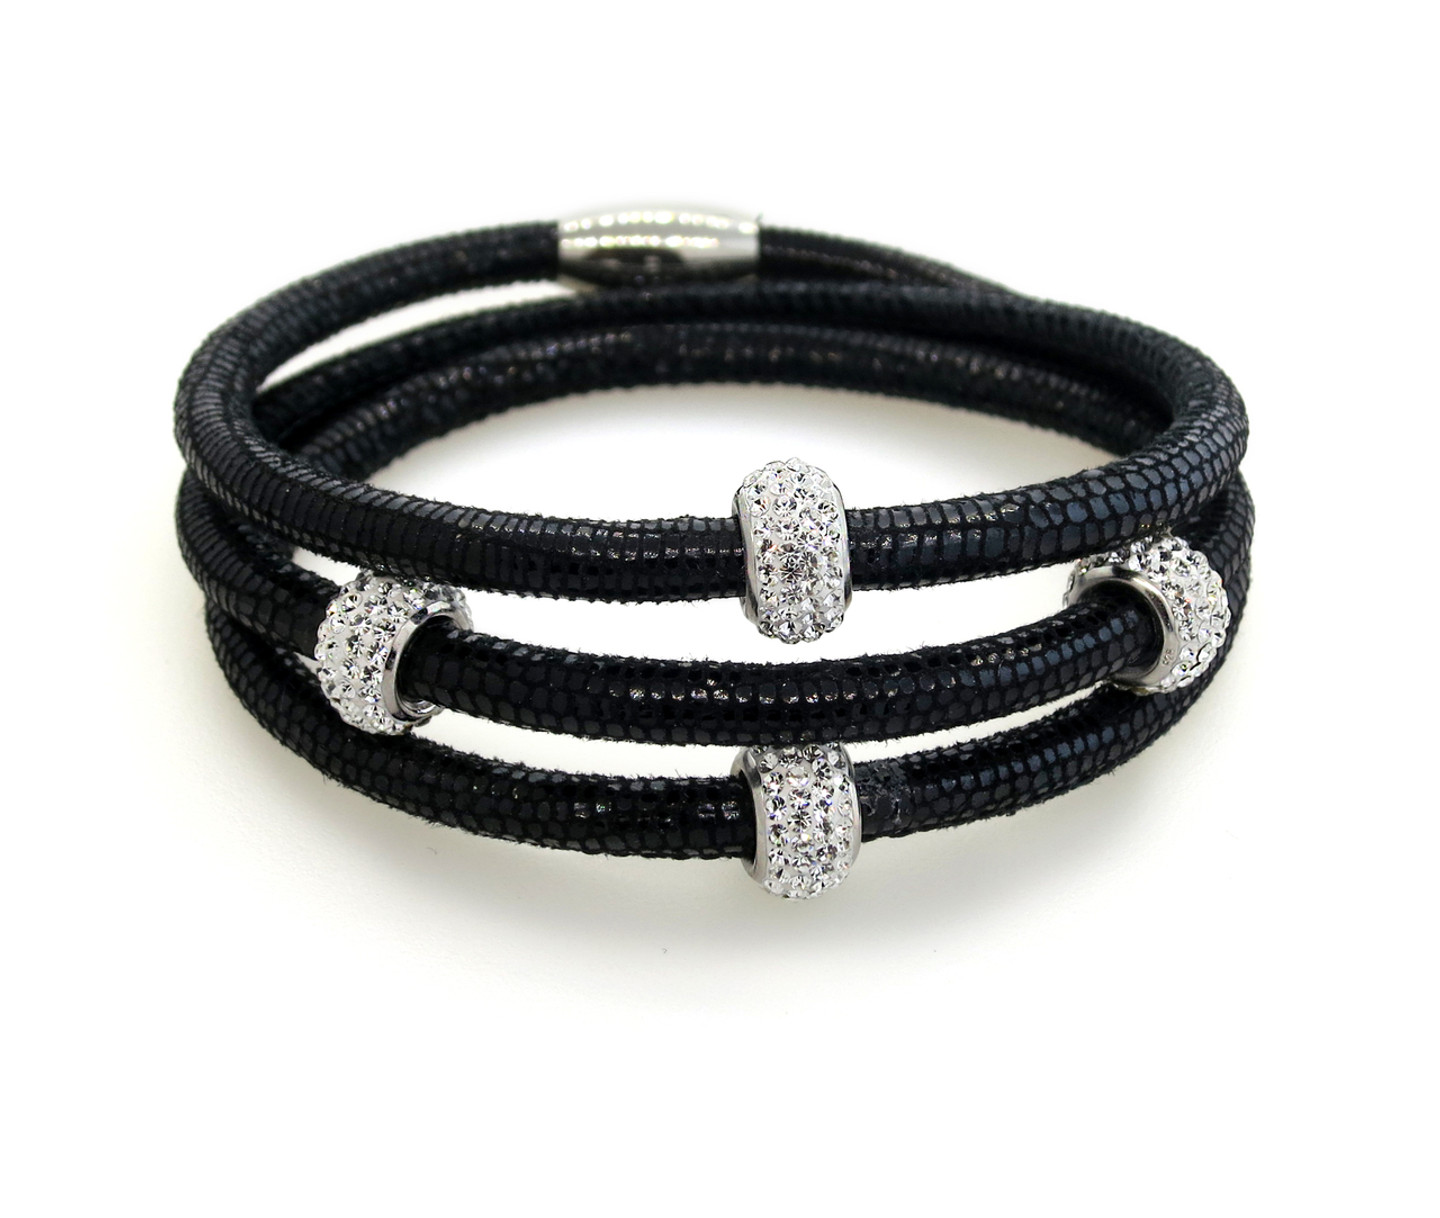 Black Standout in Snake-Triple Wrap Rich Braided Leather Bracelet-Snake Print 4 Sterling Silver CZ Beads. Magnetic Clasp.